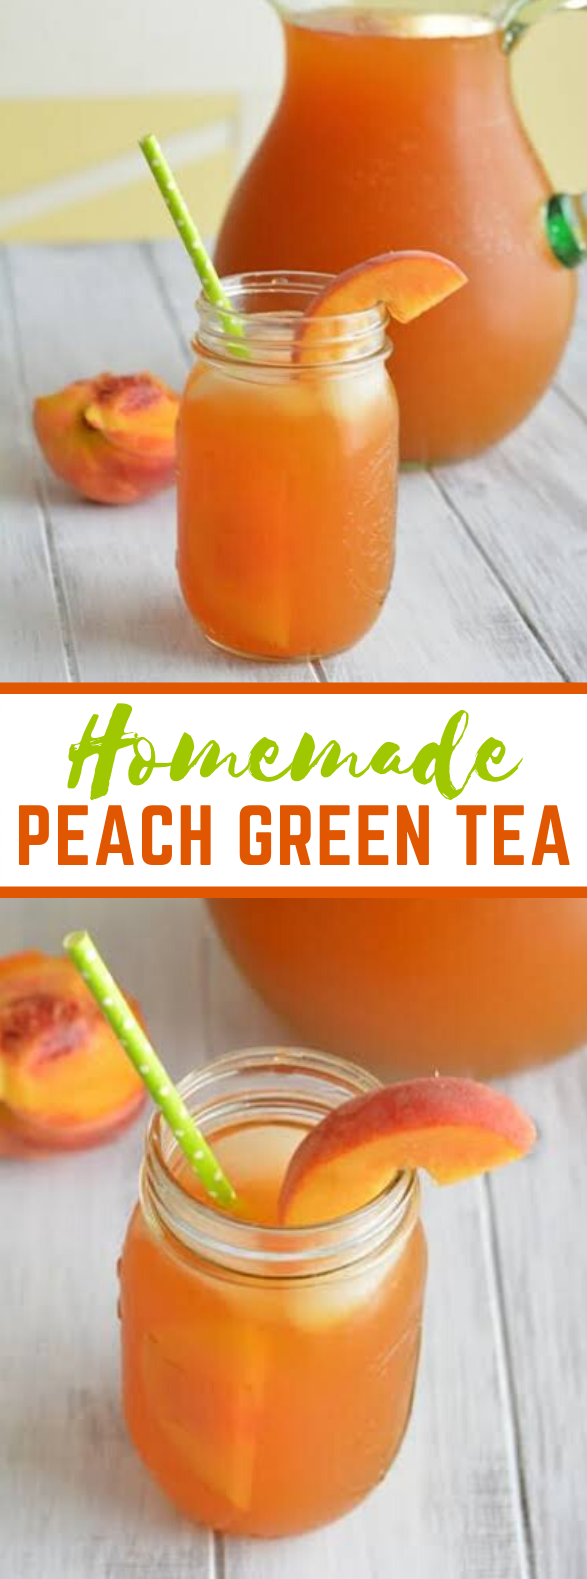 HOMEMADE PEACH GREEN TEA #summer #drink